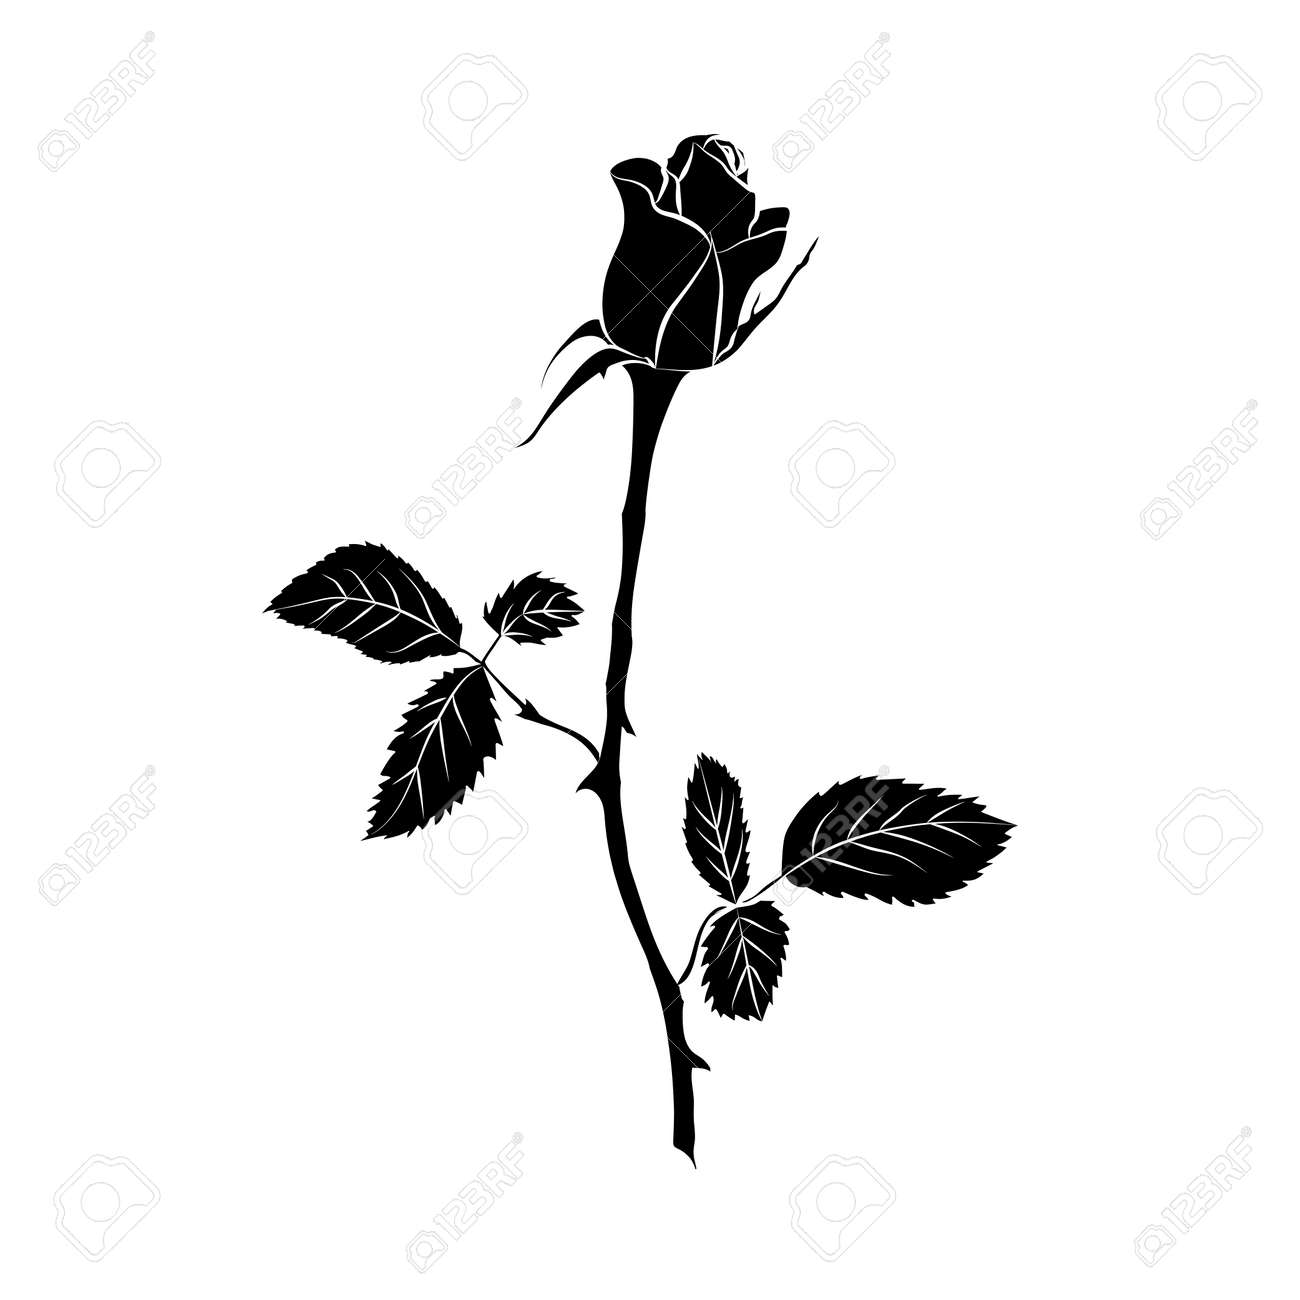 silhouette of rose isolated on white background. Vector illustration. - 41062670